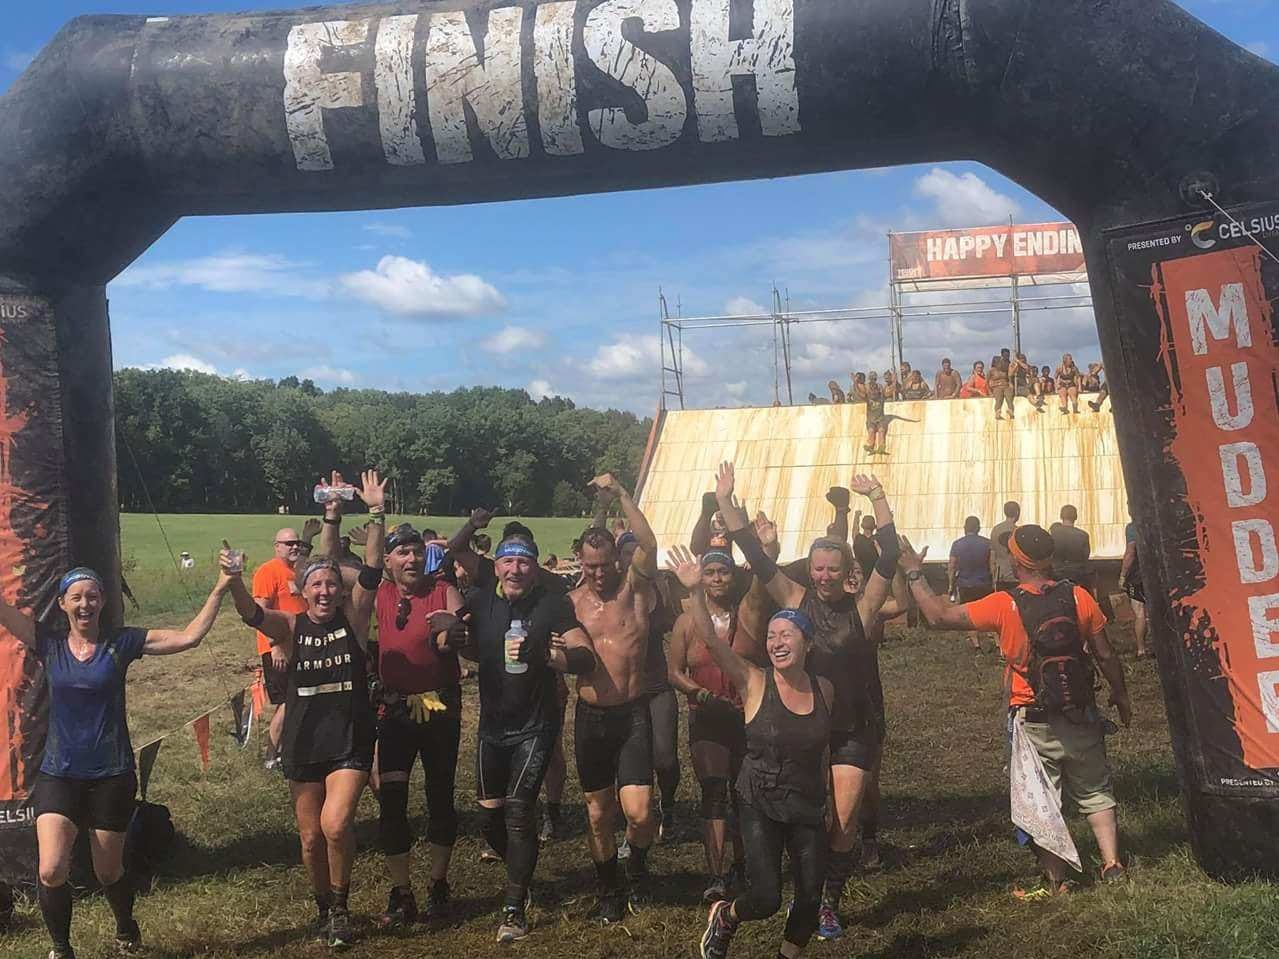 Smyrna man Bruce Ippel, who has multiple sclerosis, said he wouldn't have finished the Tough Mudder race without his friends' support.